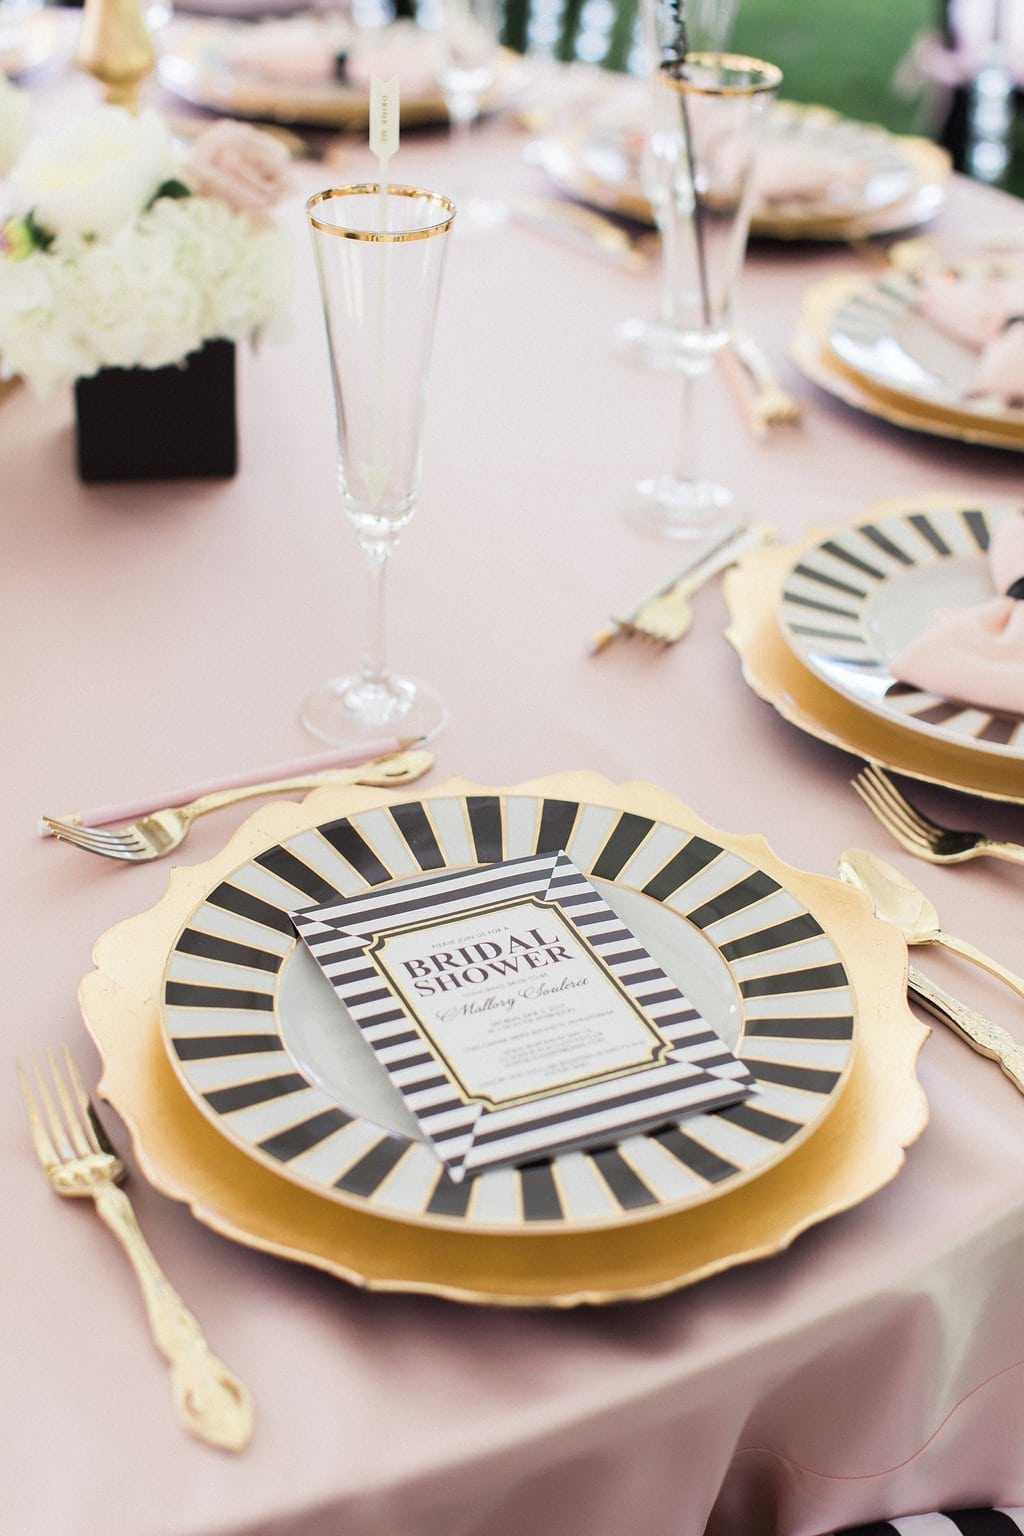 black and white plate with gold charger and pink table cloth - Black & White Kate Spade Inspired Bridal Shower